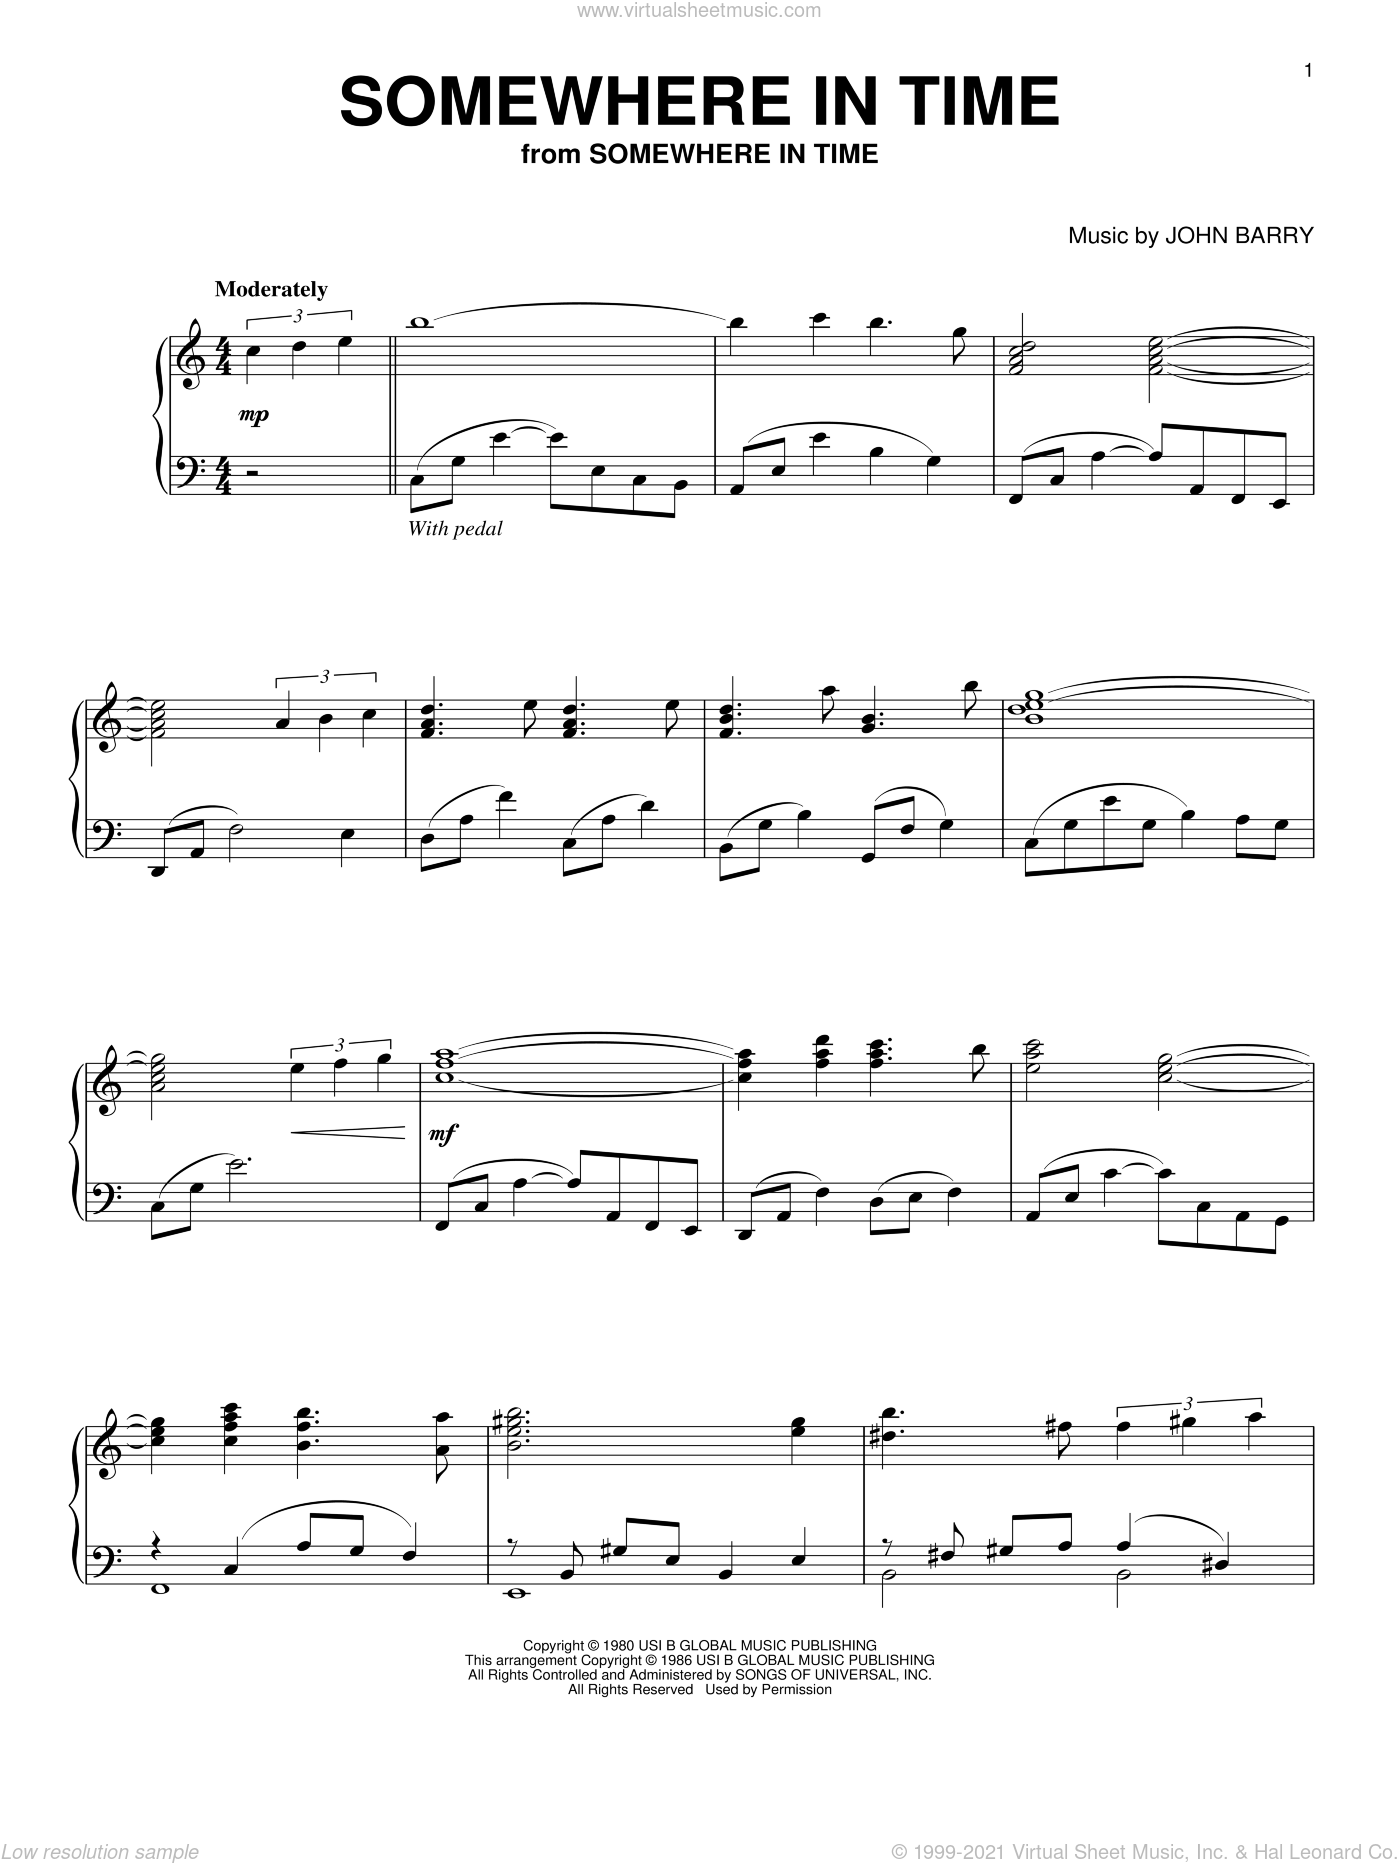 Somewhere In Time sheet music for piano solo by B.A. Robertson and John Barry, intermediate